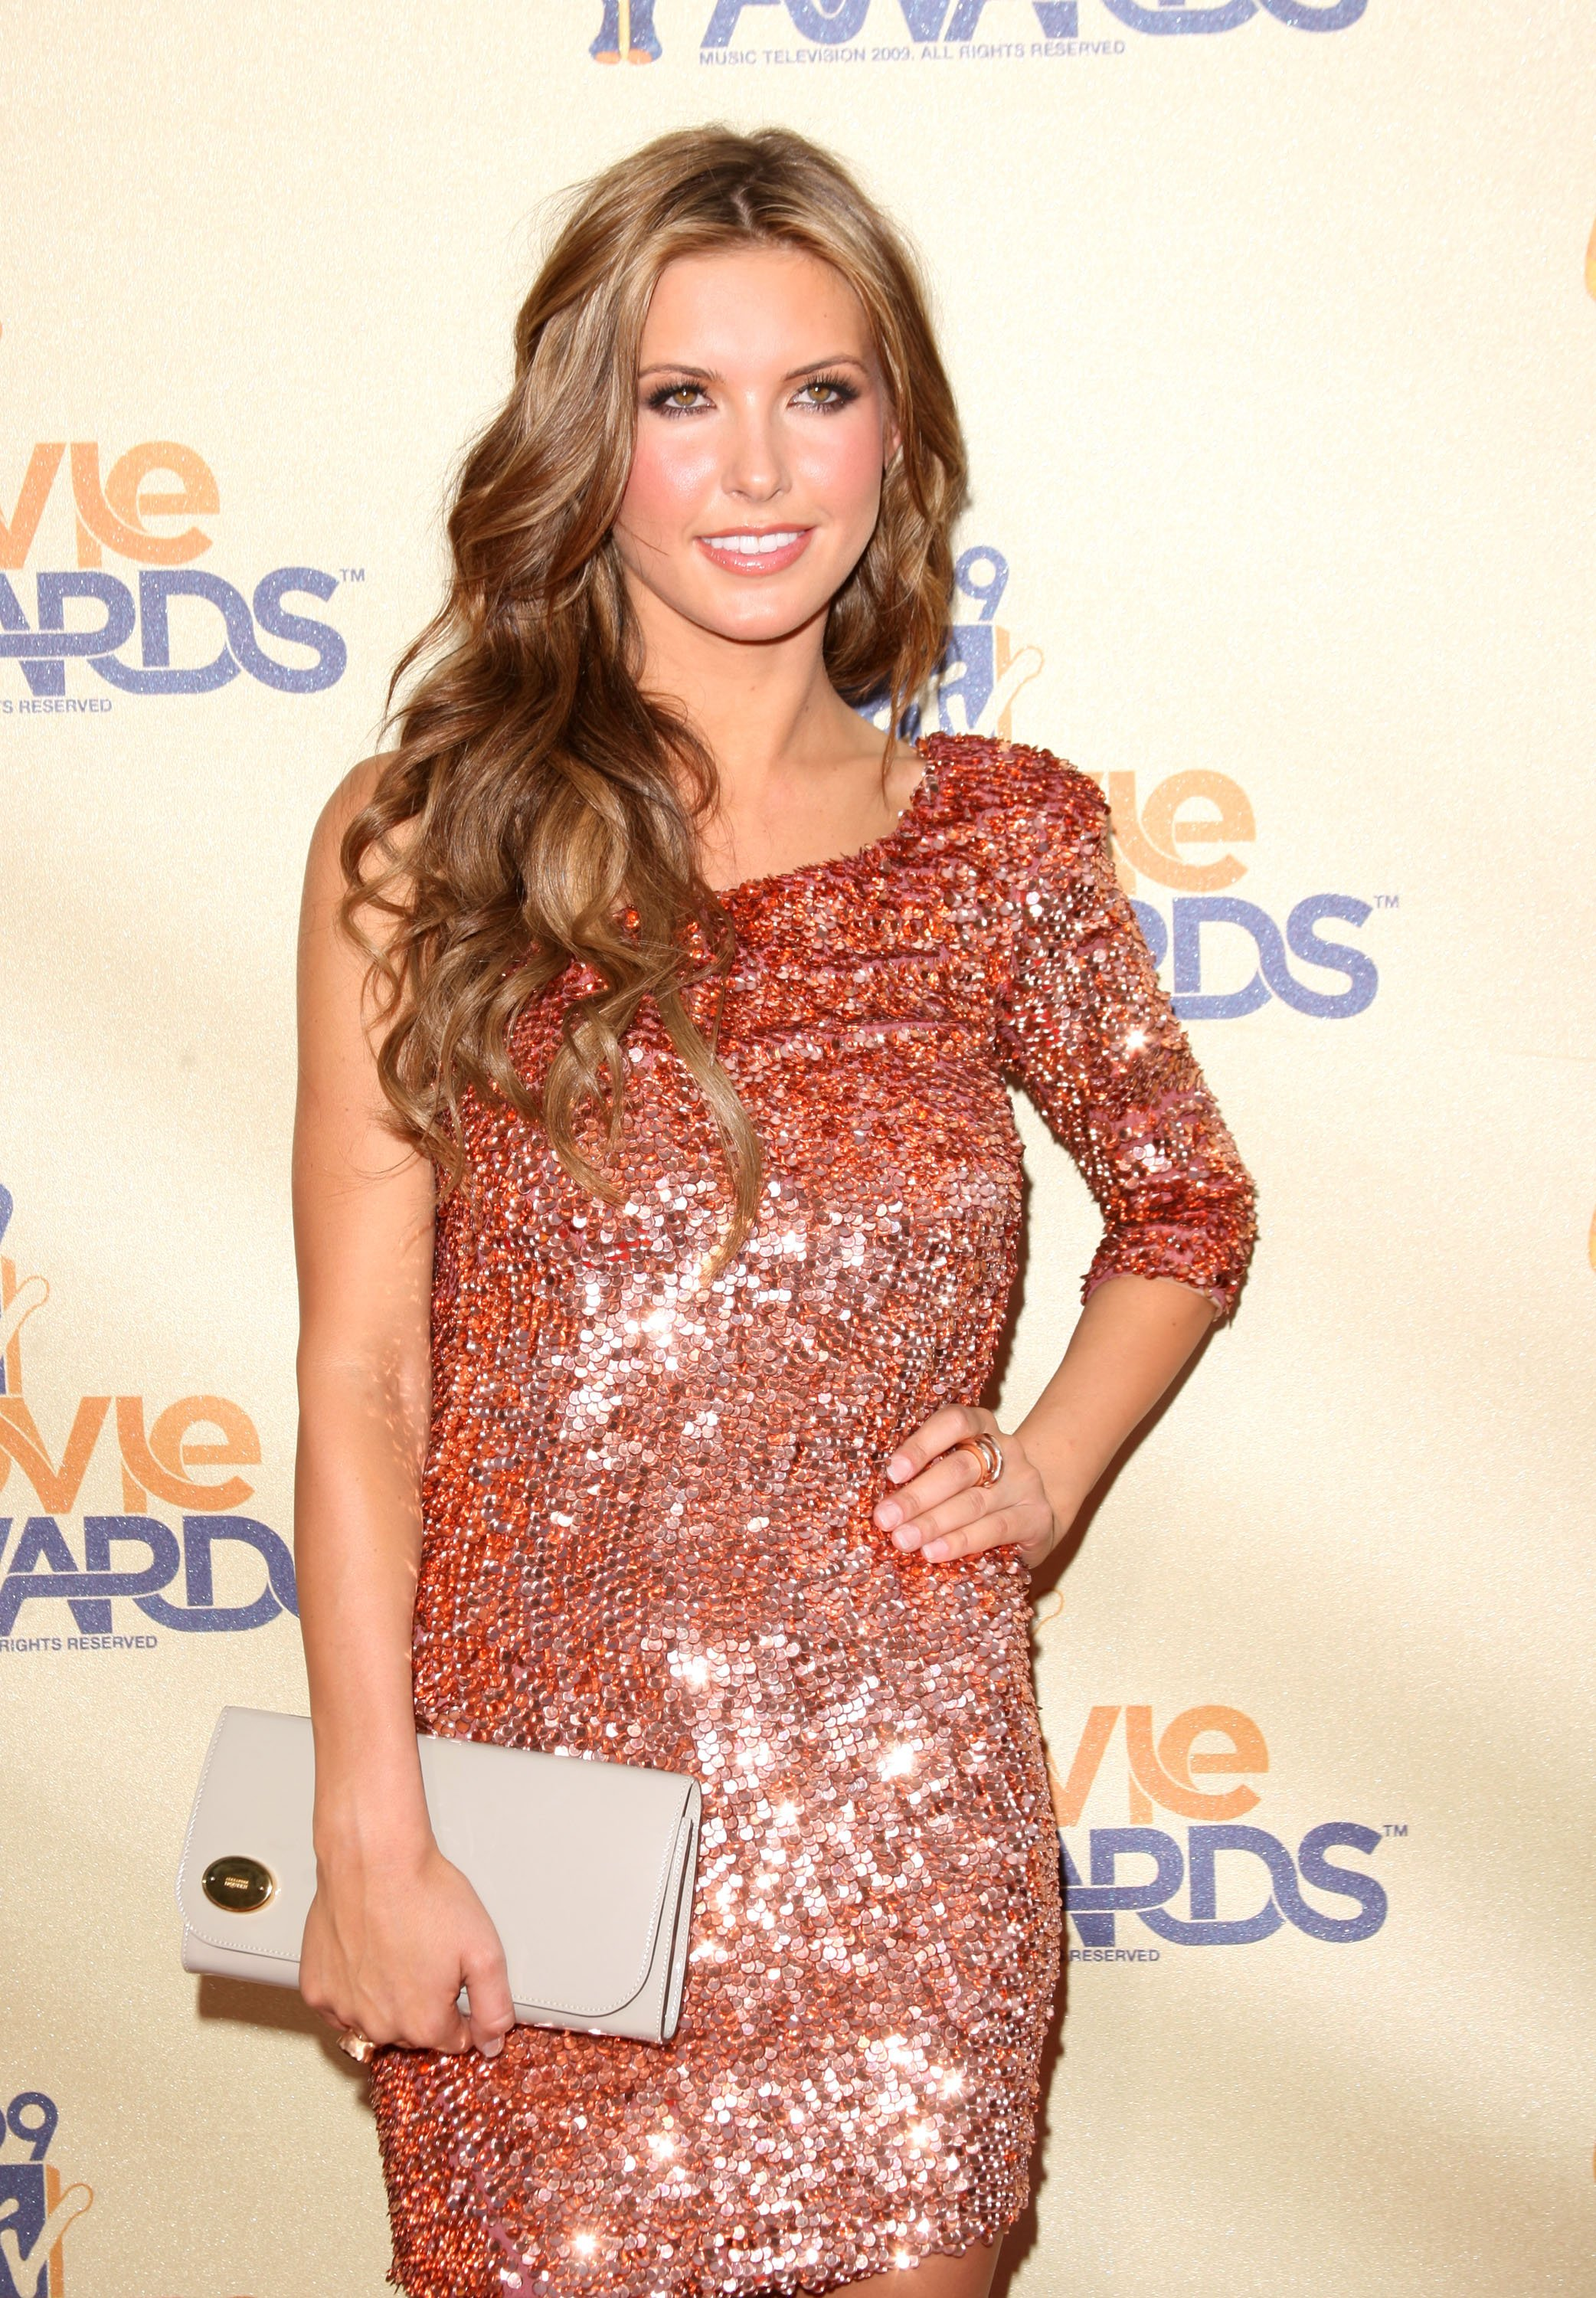 18210_Celebutopia-Audrina_Patridge_arrives_at_the_2009_MTV_Movie_Awards-07_122_556lo.jpg